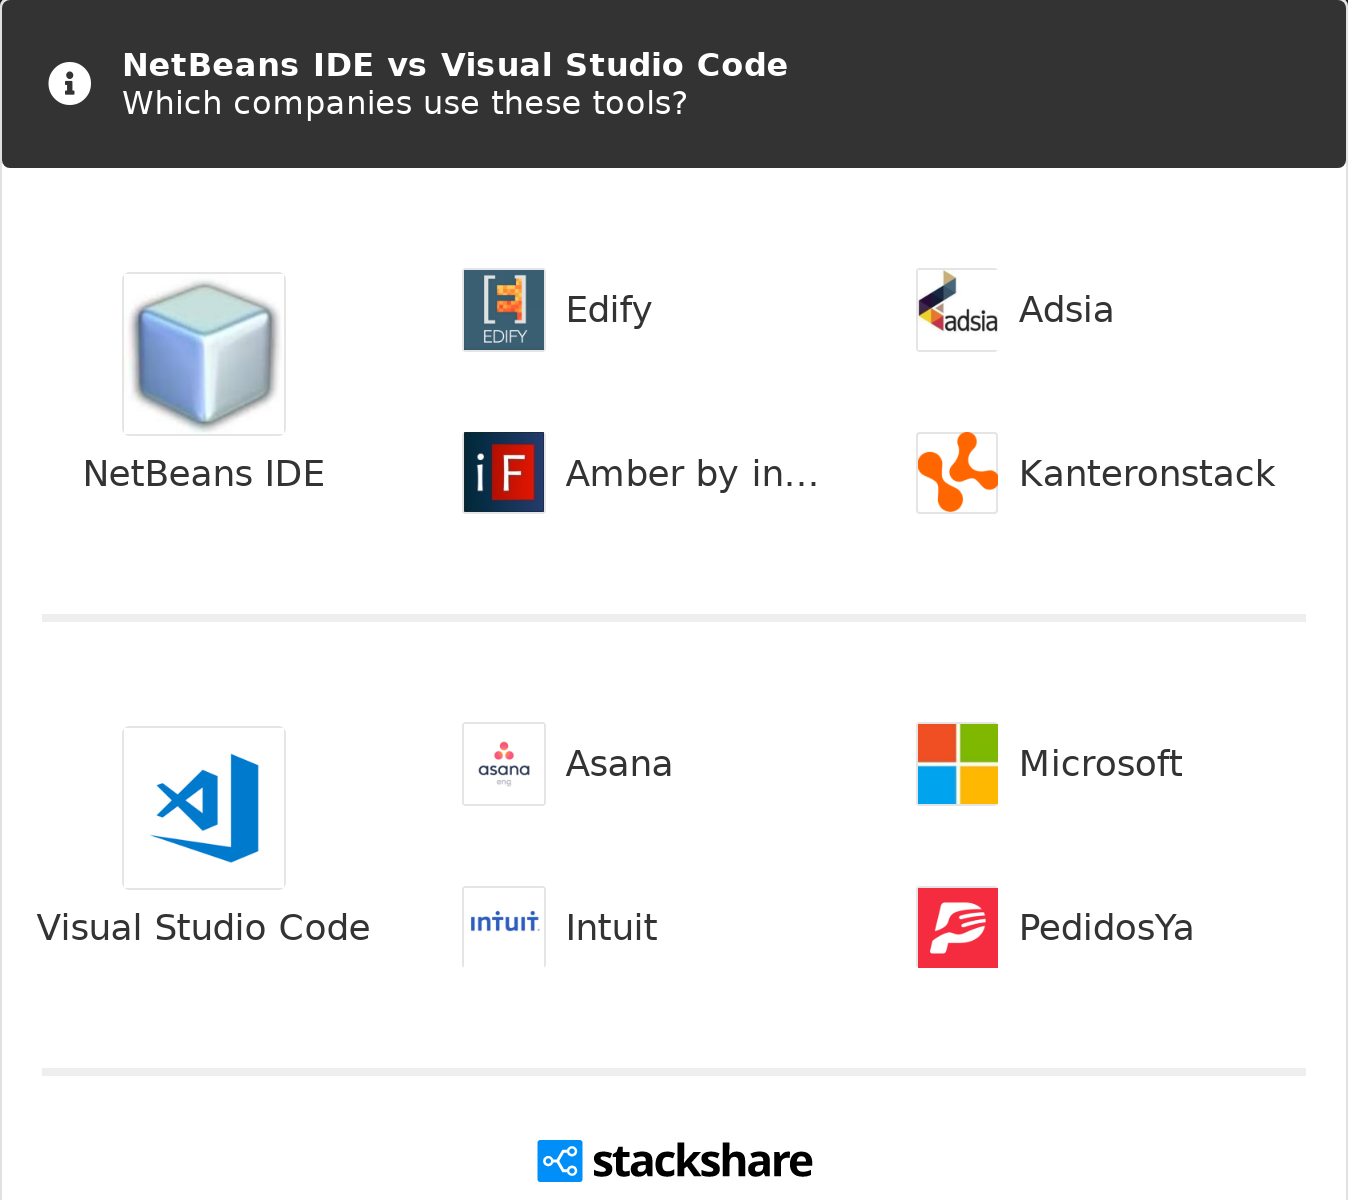 NetBeans IDE vs Visual Studio Code | What are the differences?